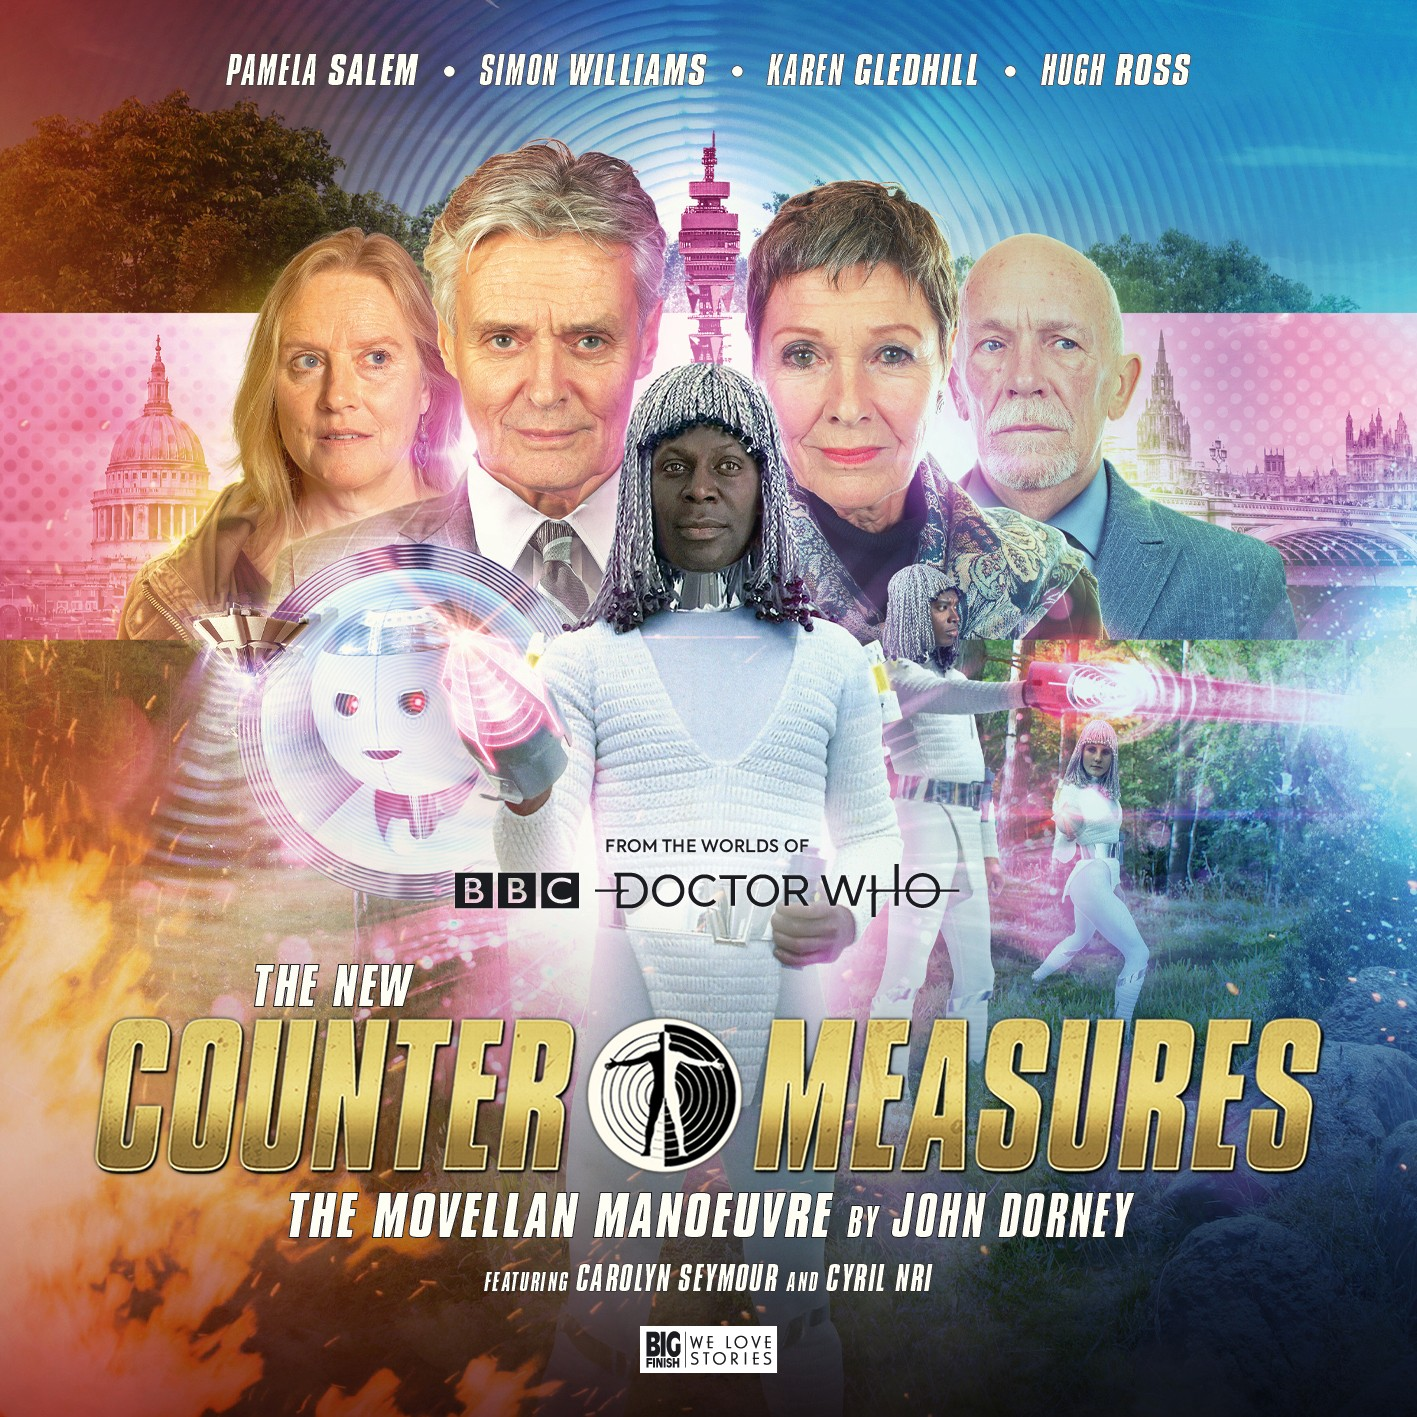 The New Counter-Measures: The Movellan Manoeuvre - Big Finish